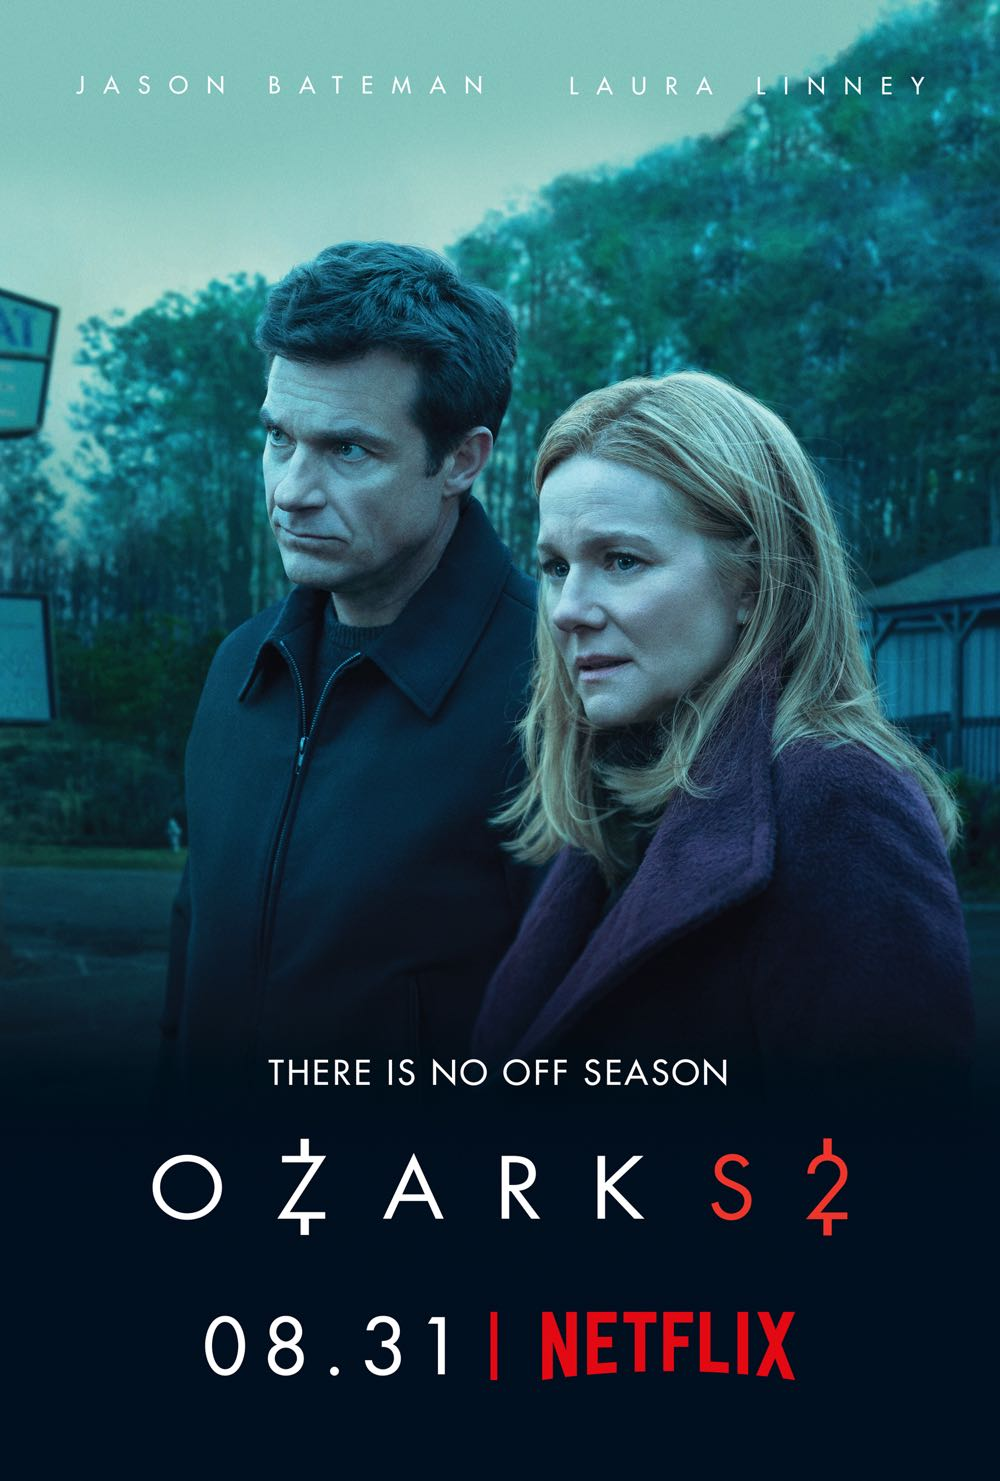 Ozark-Season-2-Poster-Key-Art.jpg